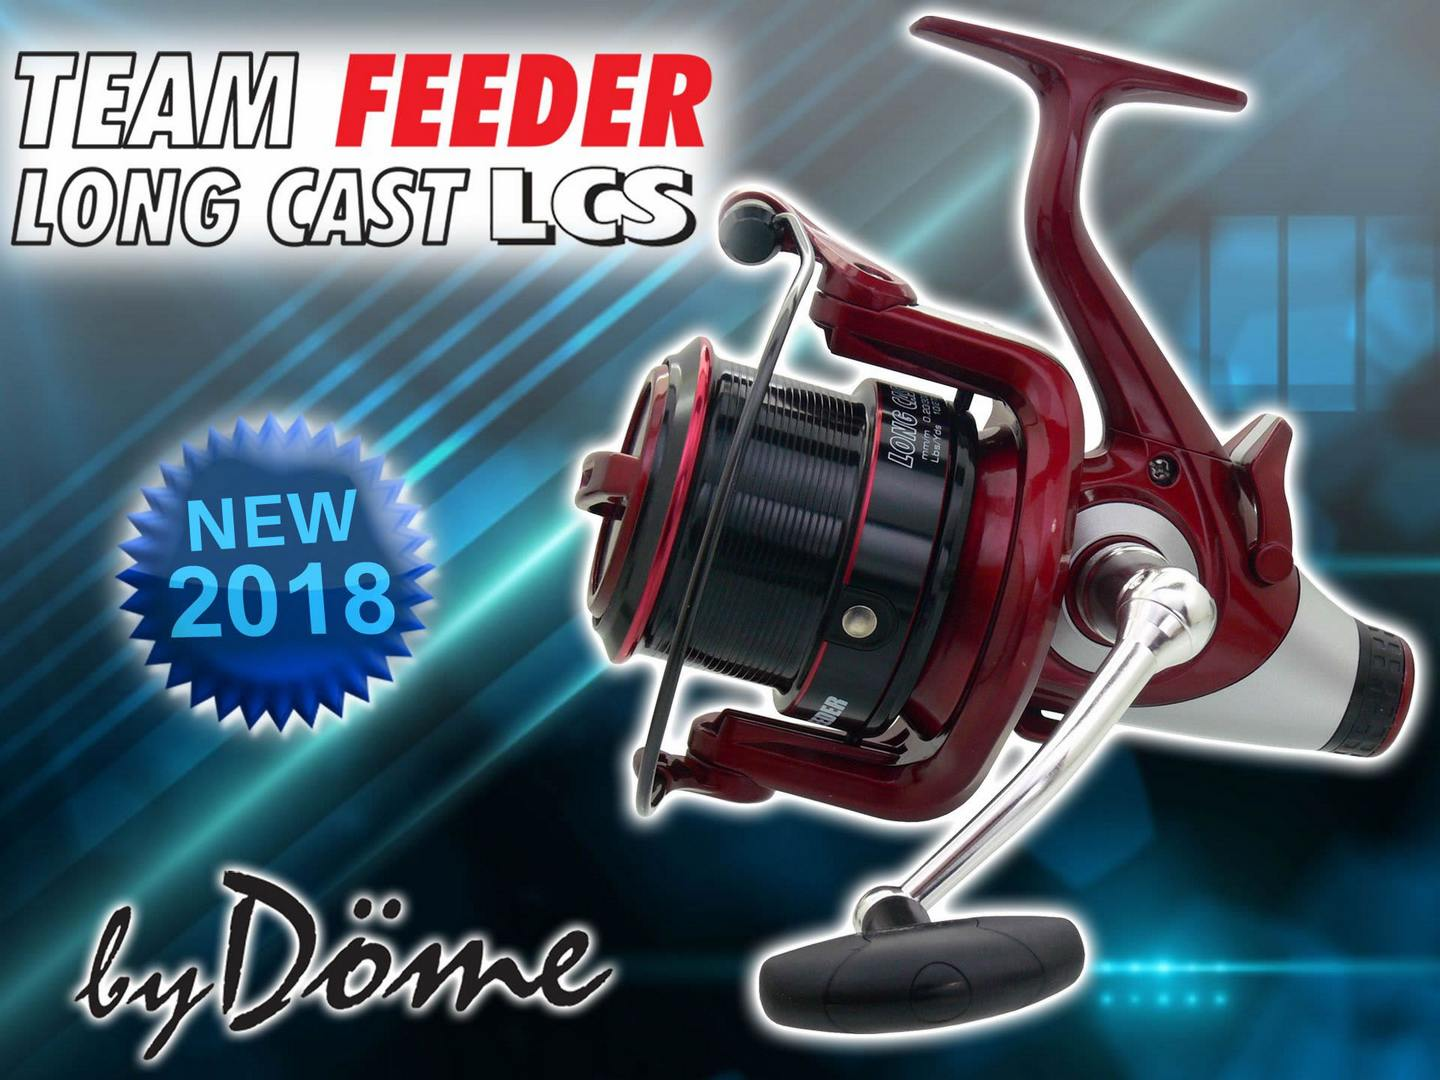 By Dome Team Feeder Long Cast LCS naviják